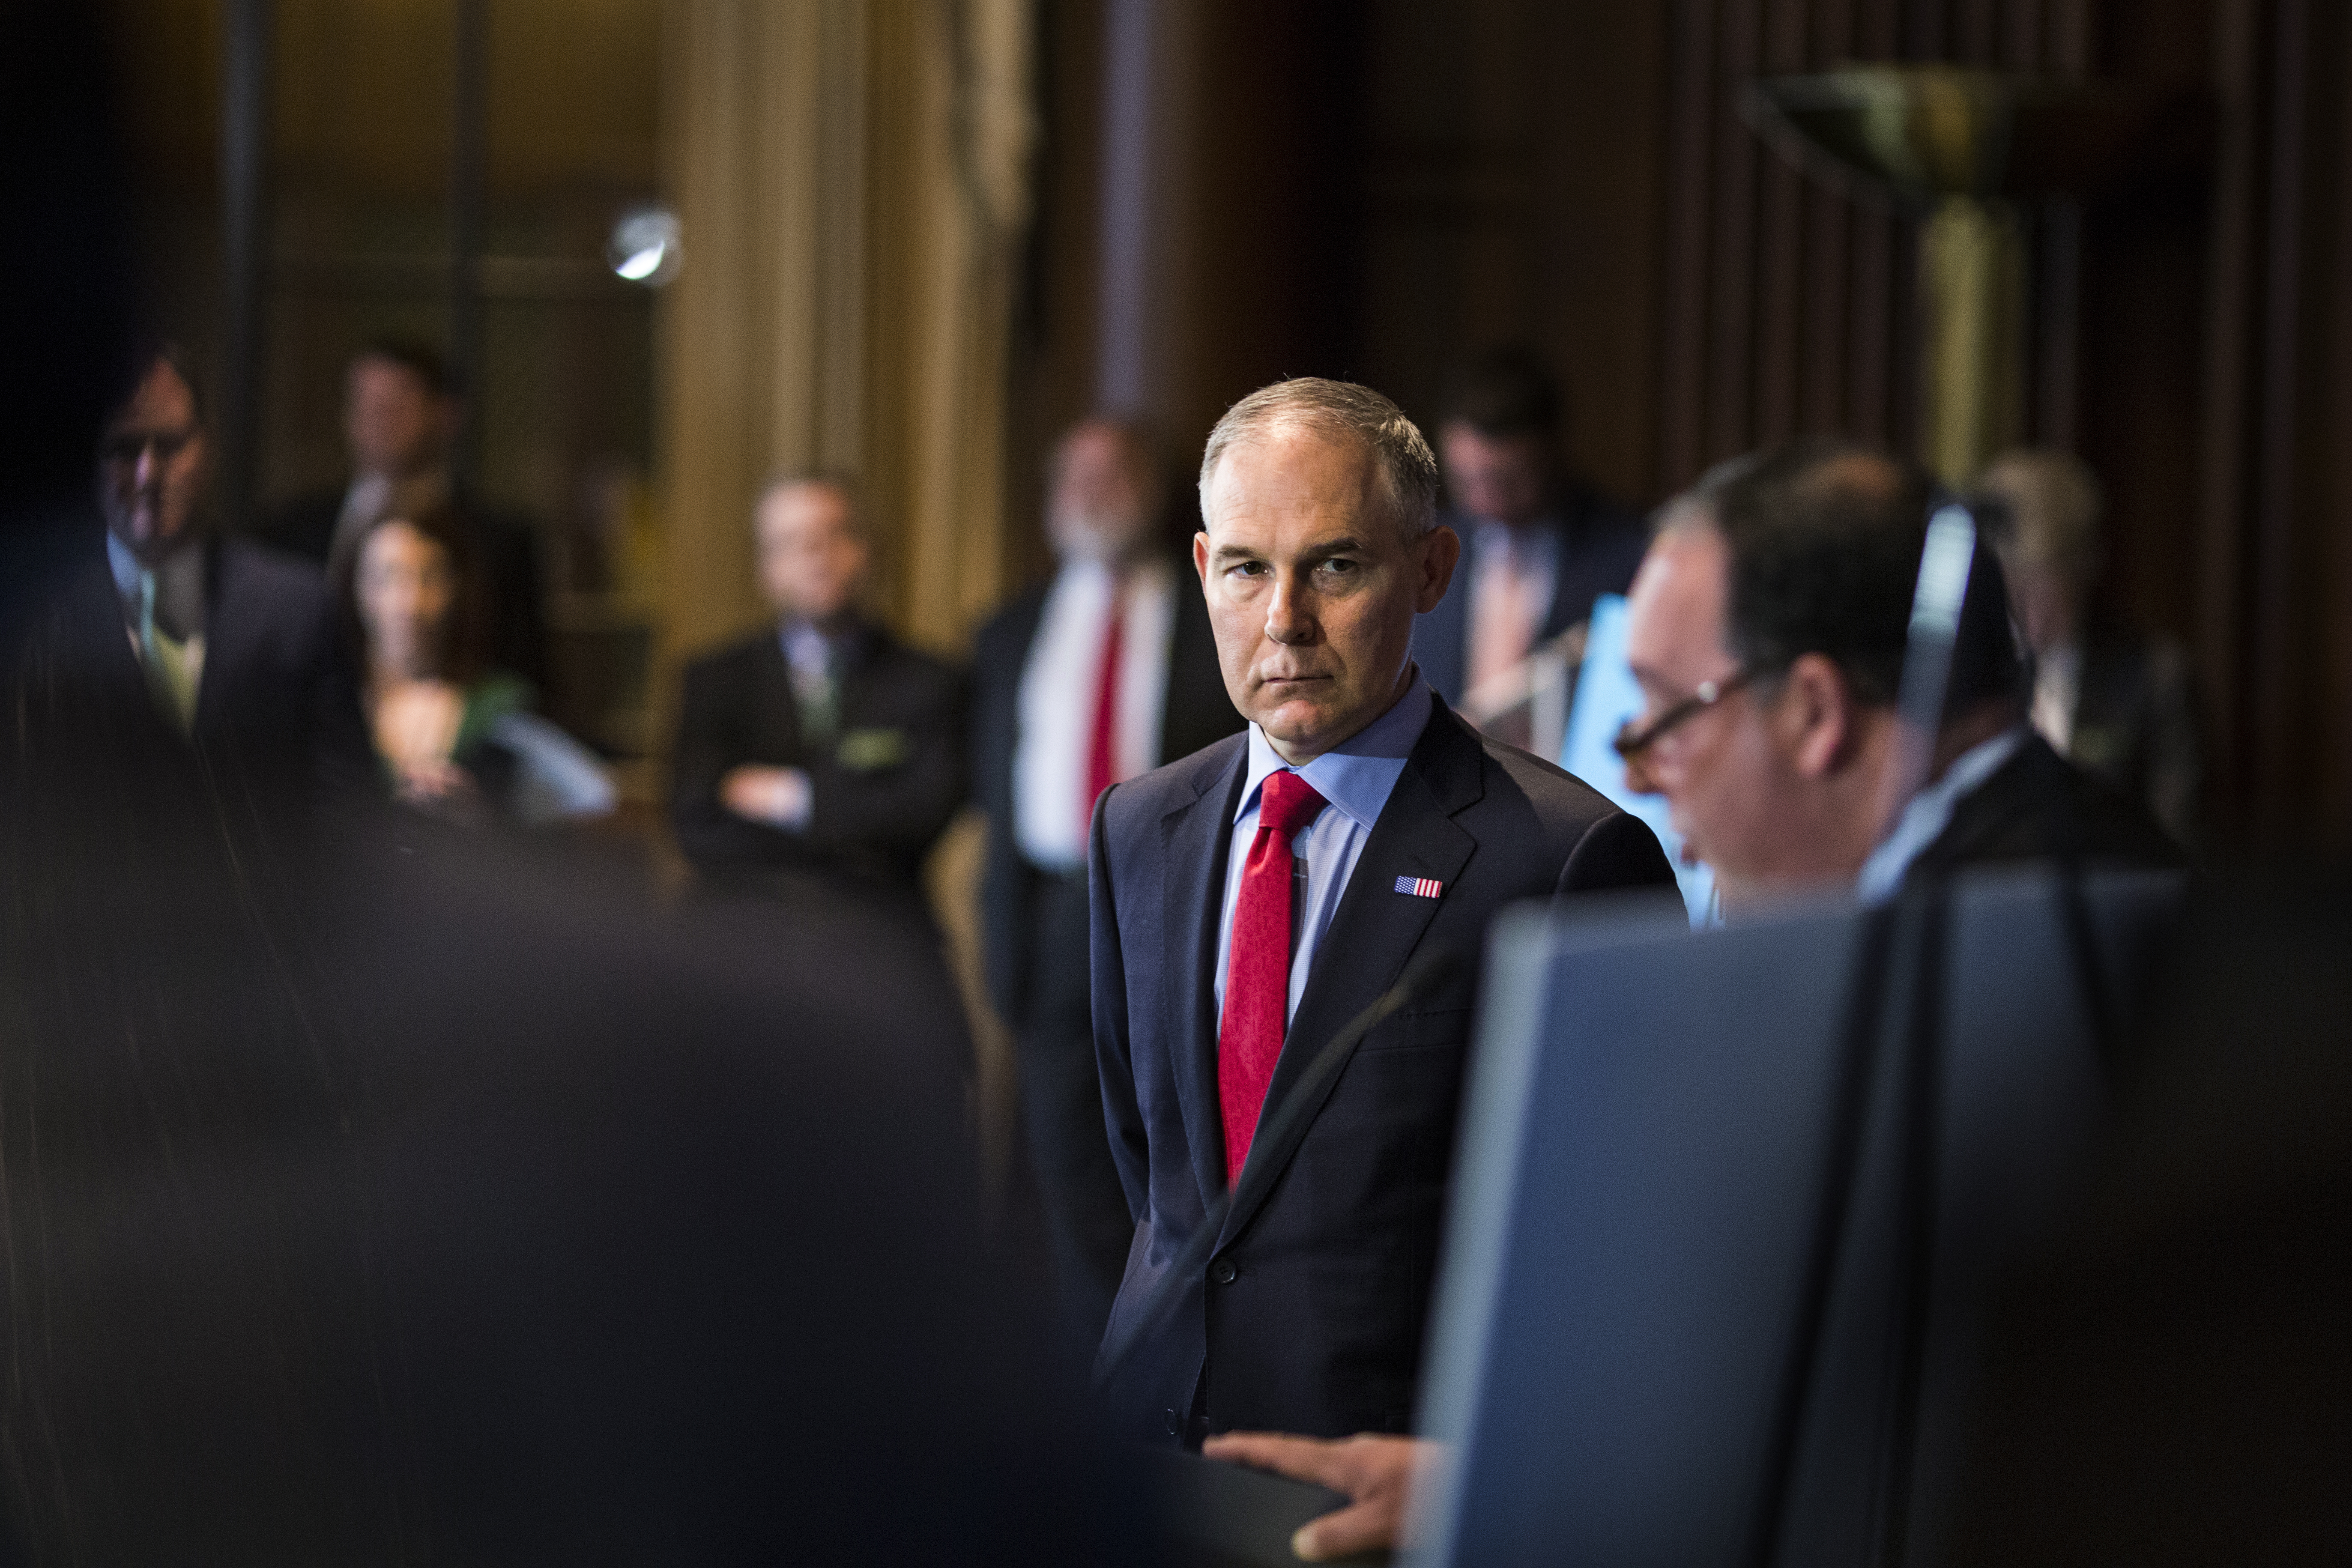 Environmental Protection Agency Administrator Scott Pruitt listens to Alliance of Automobile Manufacturers president and CEO Mitch Bainwol speak to the press at a news conference at the EPA on April 2